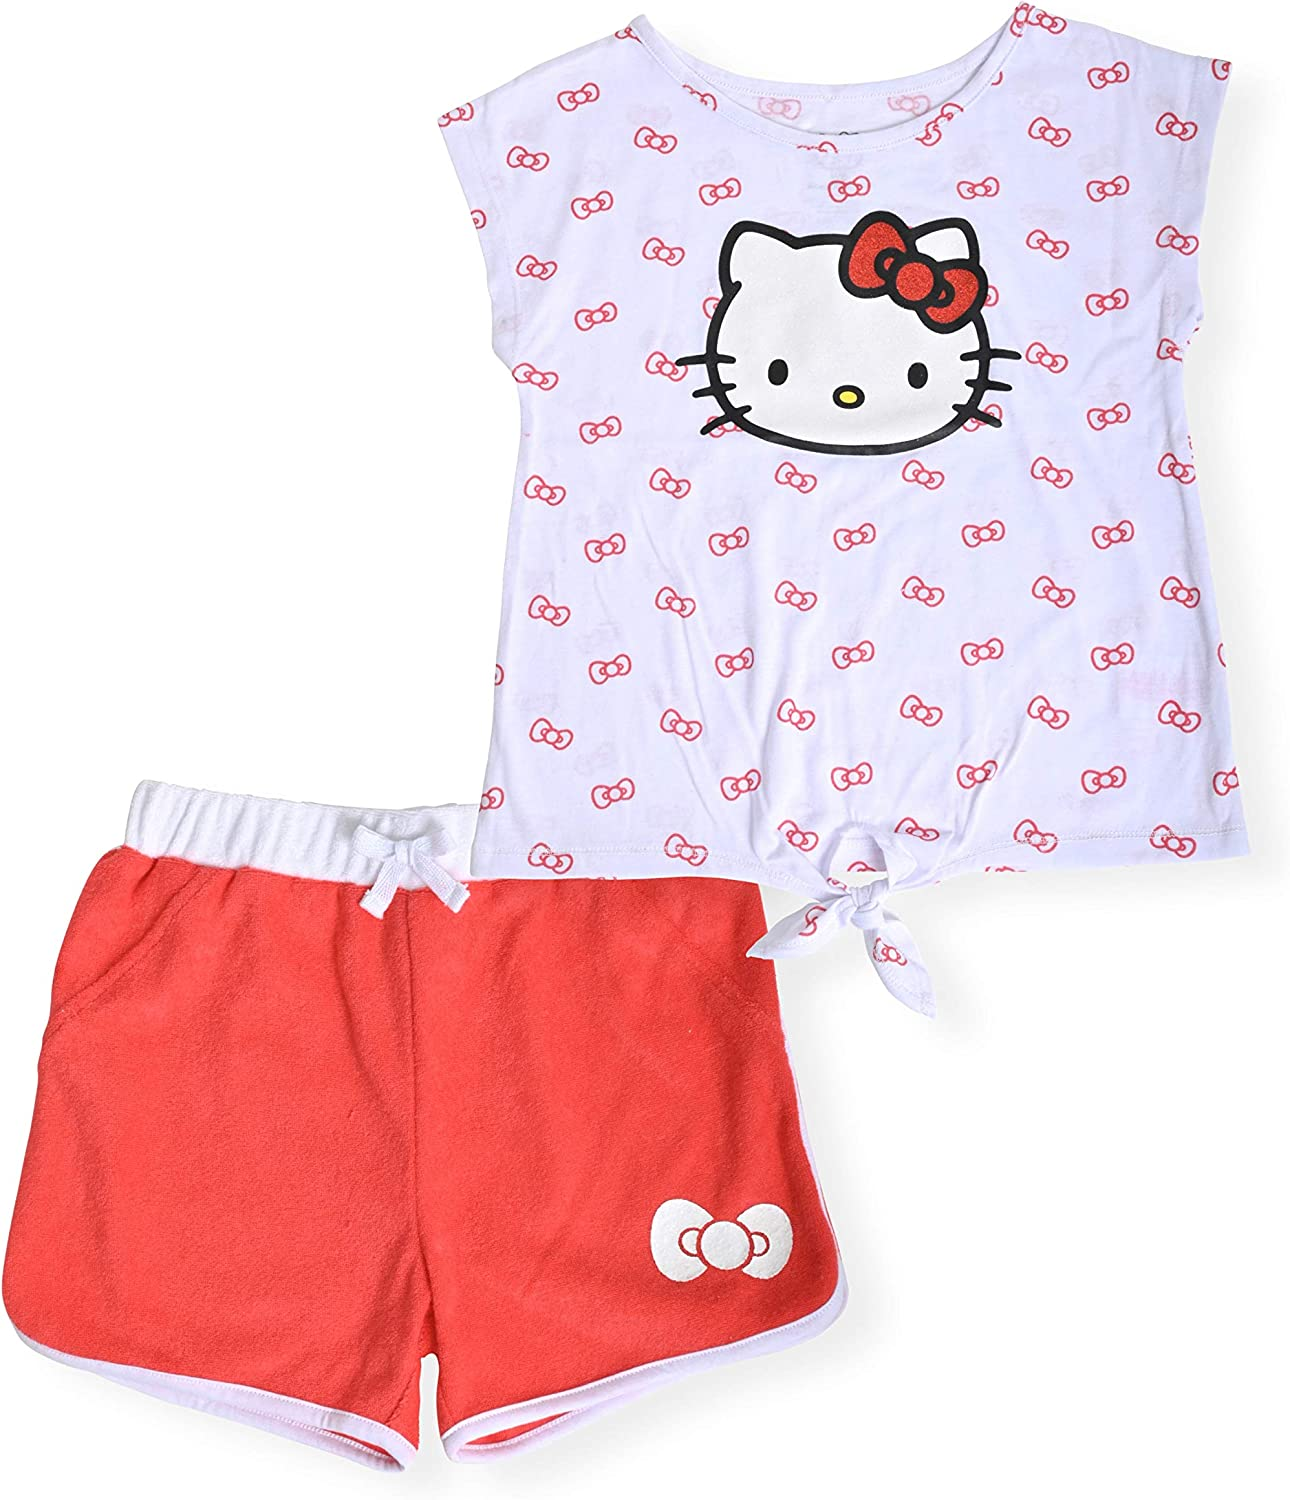 Hello Kitty Girls 2-Piece Fashion Tee Active Max 44% OFF High quality Shirt and Short Set